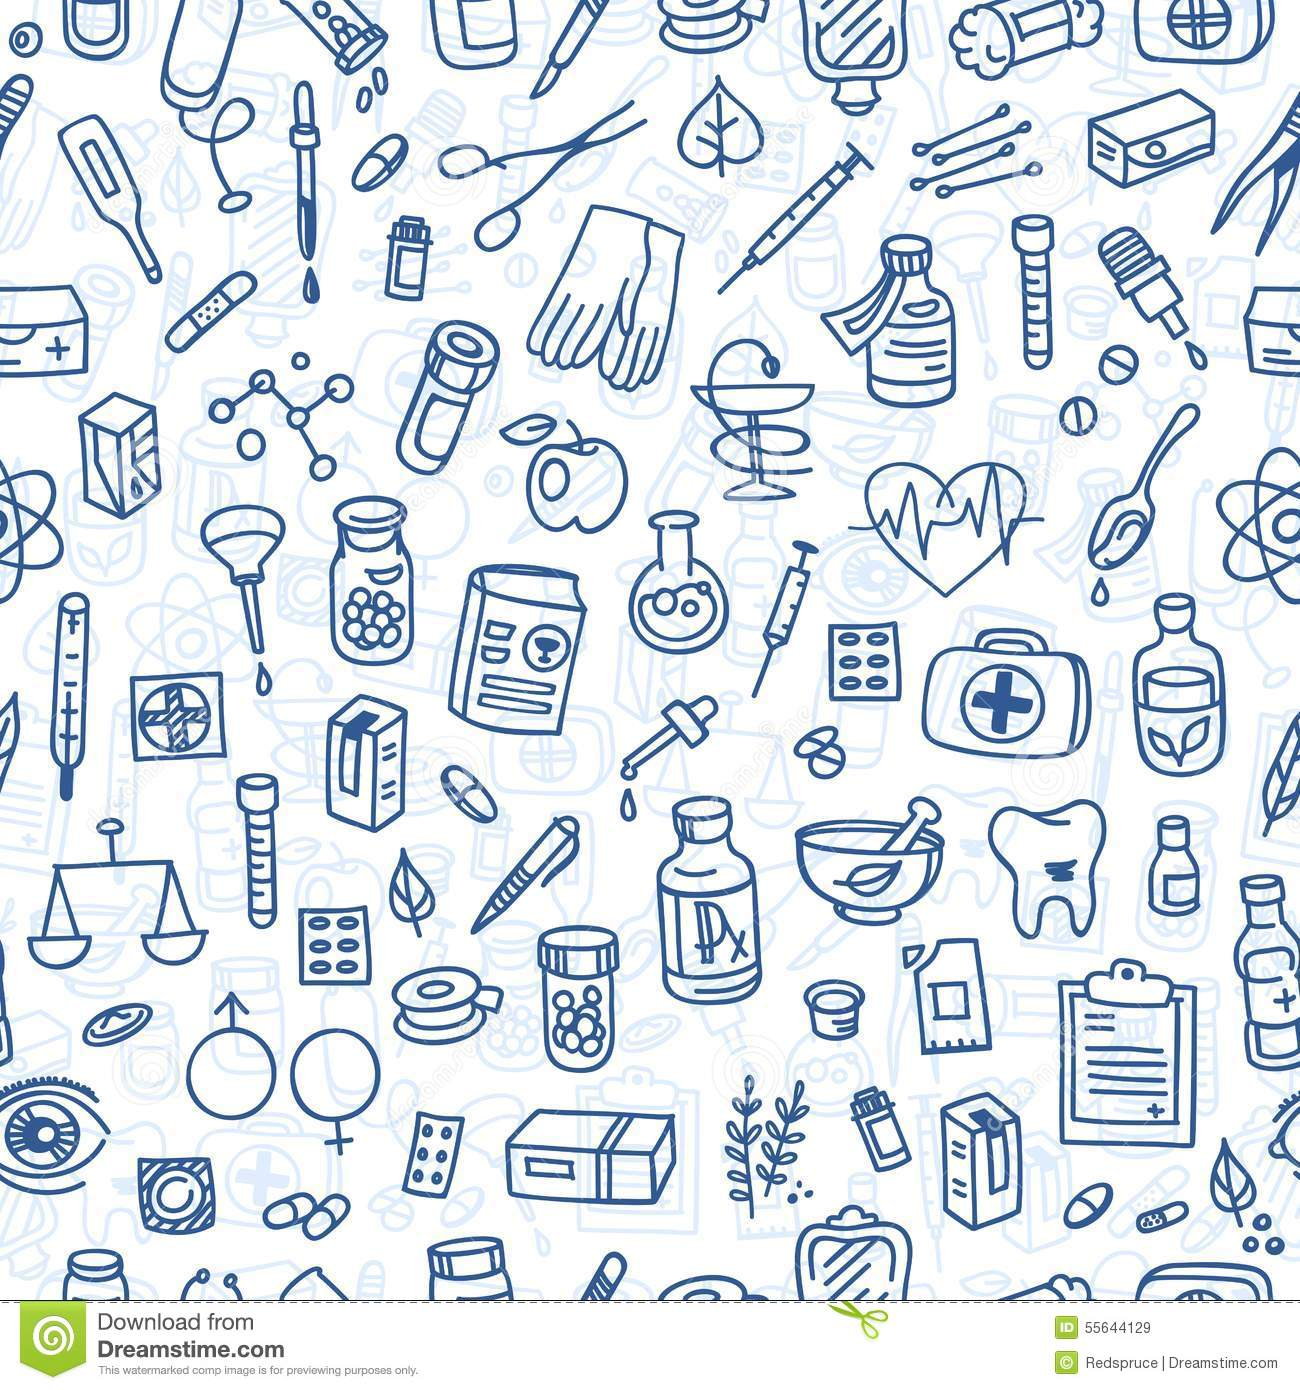 Cool Background For Health: Health Care Doodle Icons Background Stock Vector